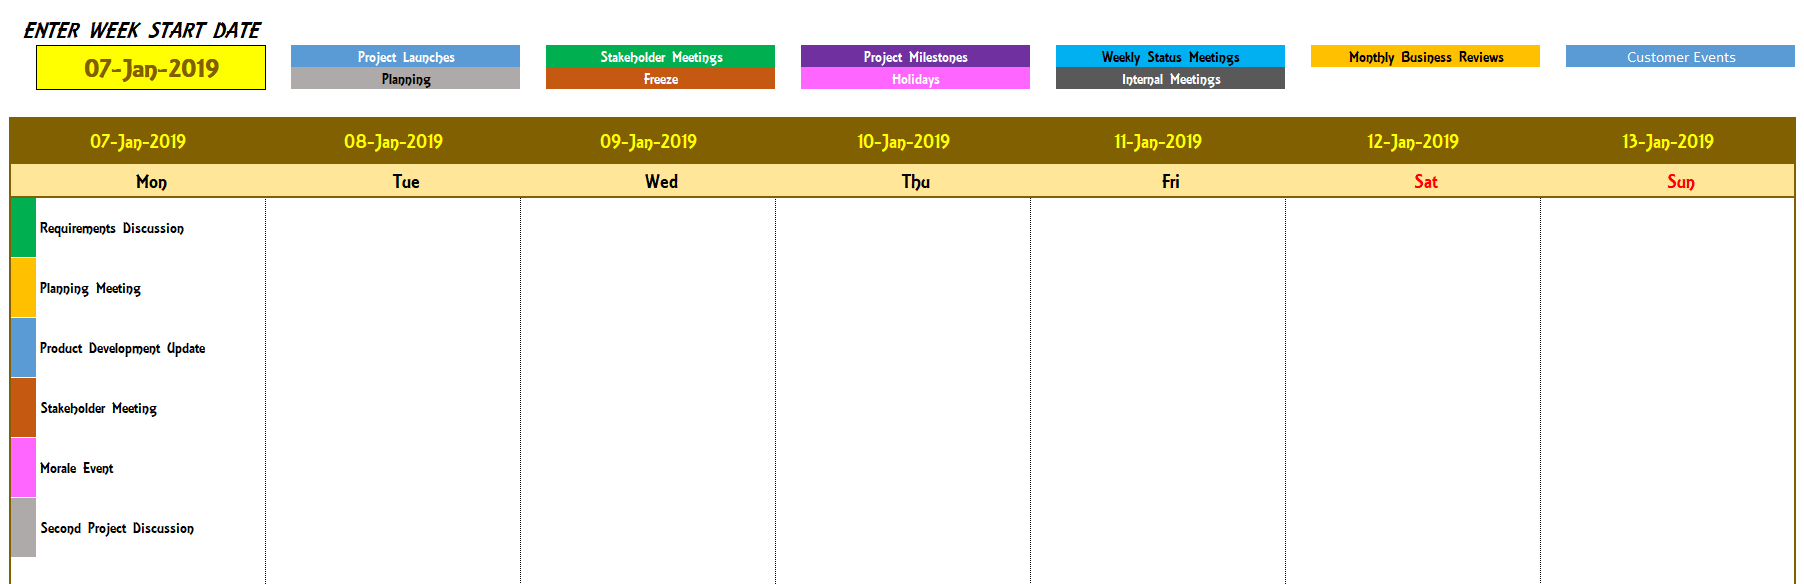 Excel Calendar Template - Excel Calendar 2019, 2020 Or Any Year intended for Excel Weekly Calendar Template